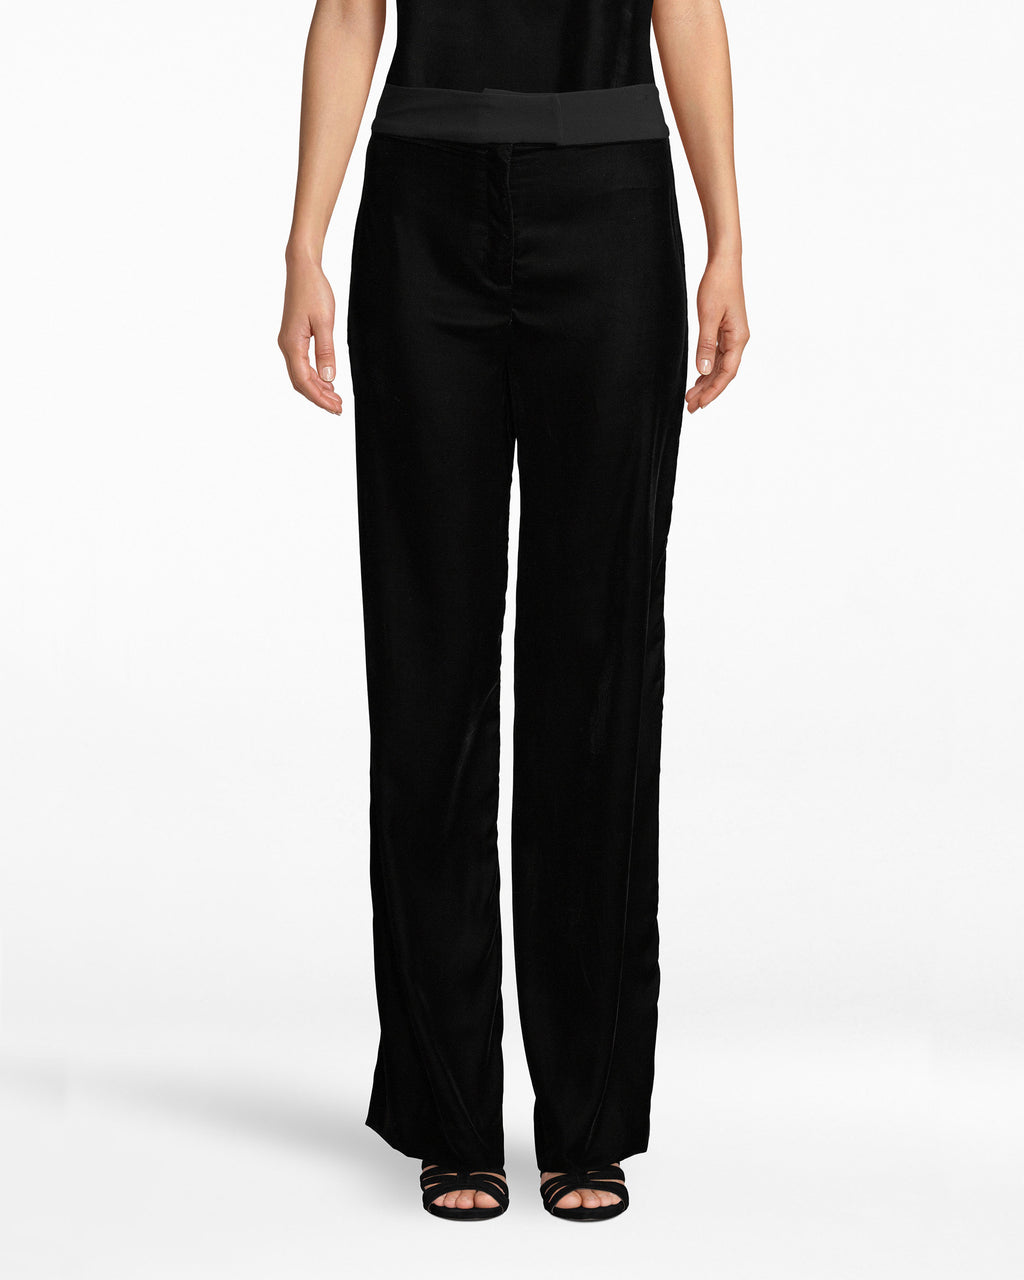 BB10222 - LIGHTWEIGHT VELVET WIDE LEG PANT - bottoms - pants - Velvet fashion is always in. Don these wde leg straight pants to your next occasion. The spandex waistband complemetns the flowy legs.